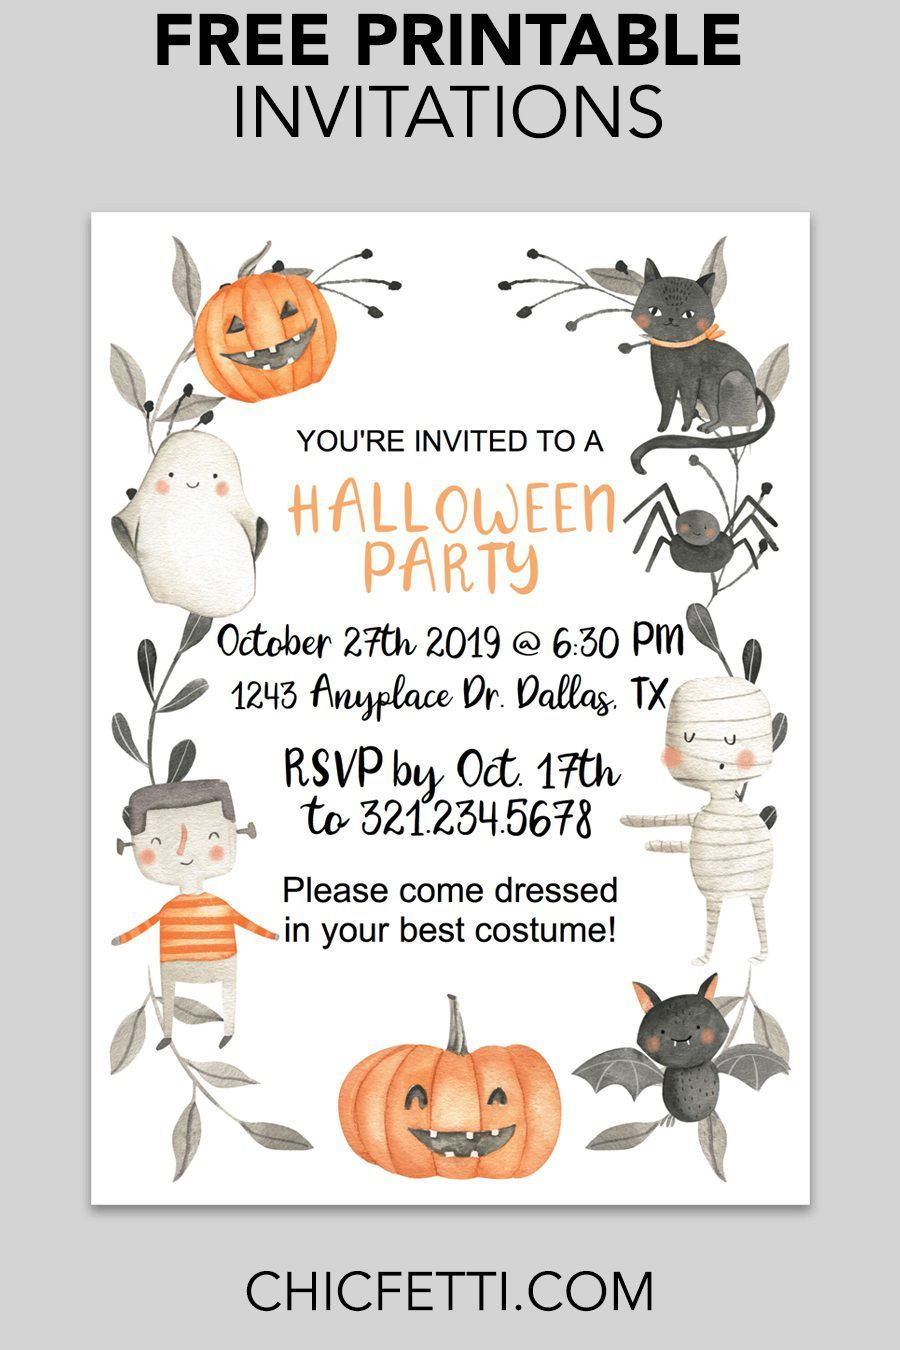 002 Awesome Halloween Party Invite Template High Definition  Spooky Invitation Free Printable Birthday DownloadFull